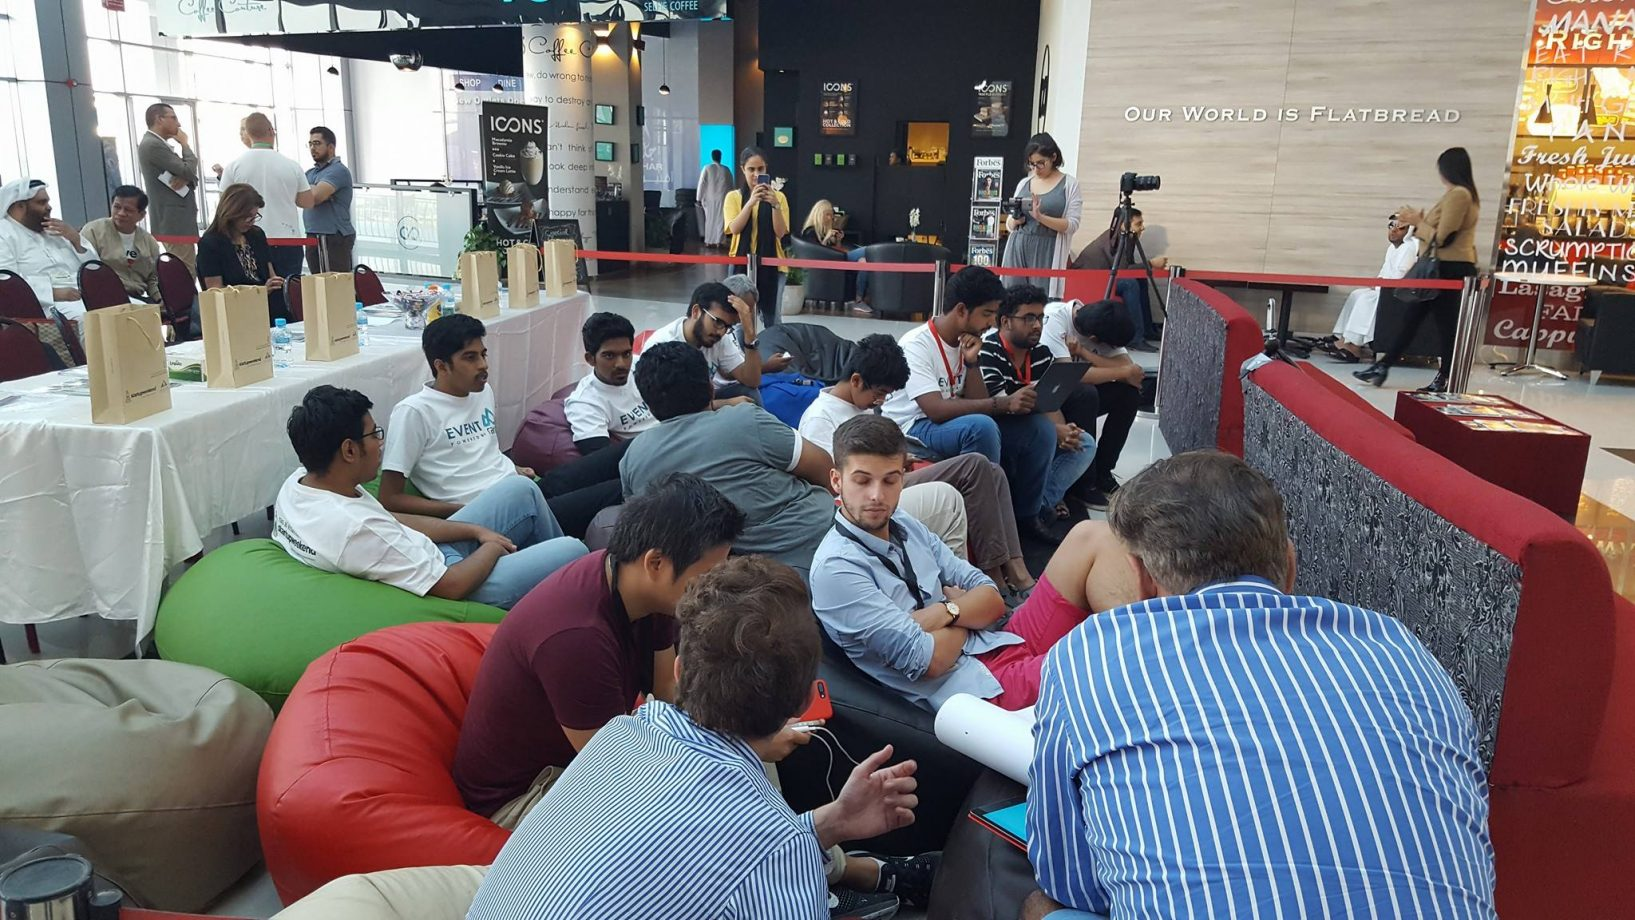 Ras Al Khaimah Inaugurates First Startups Incubator During Startup Weekend